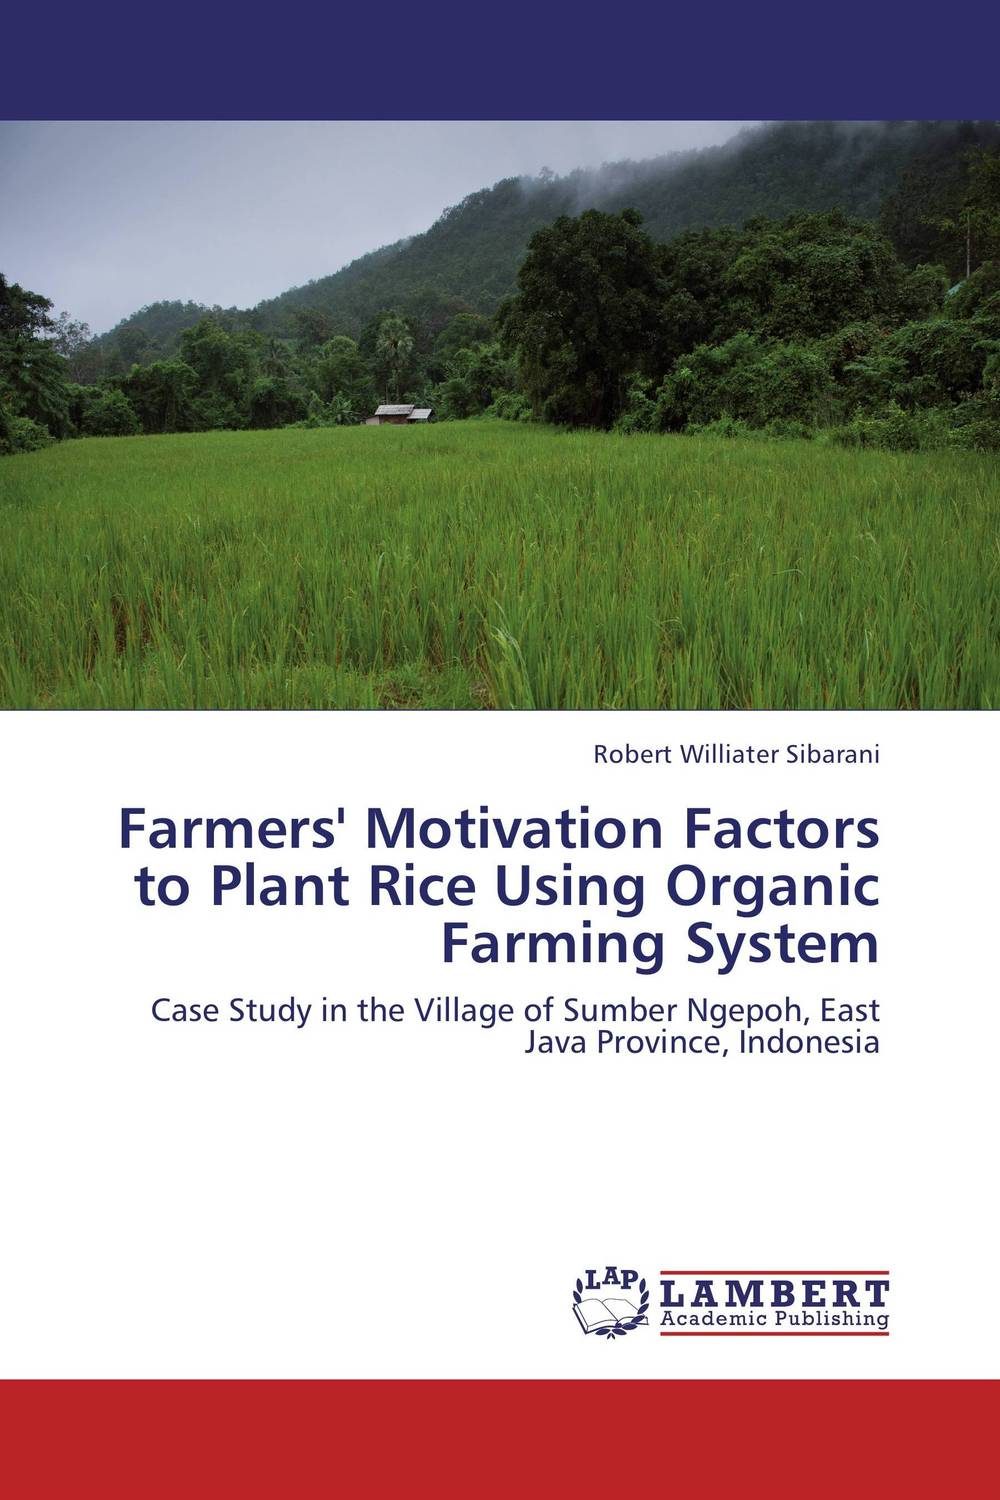 Farmers' Motivation Factors to Plant Rice Using Organic Farming System farmers response to integrated plant nutrition system